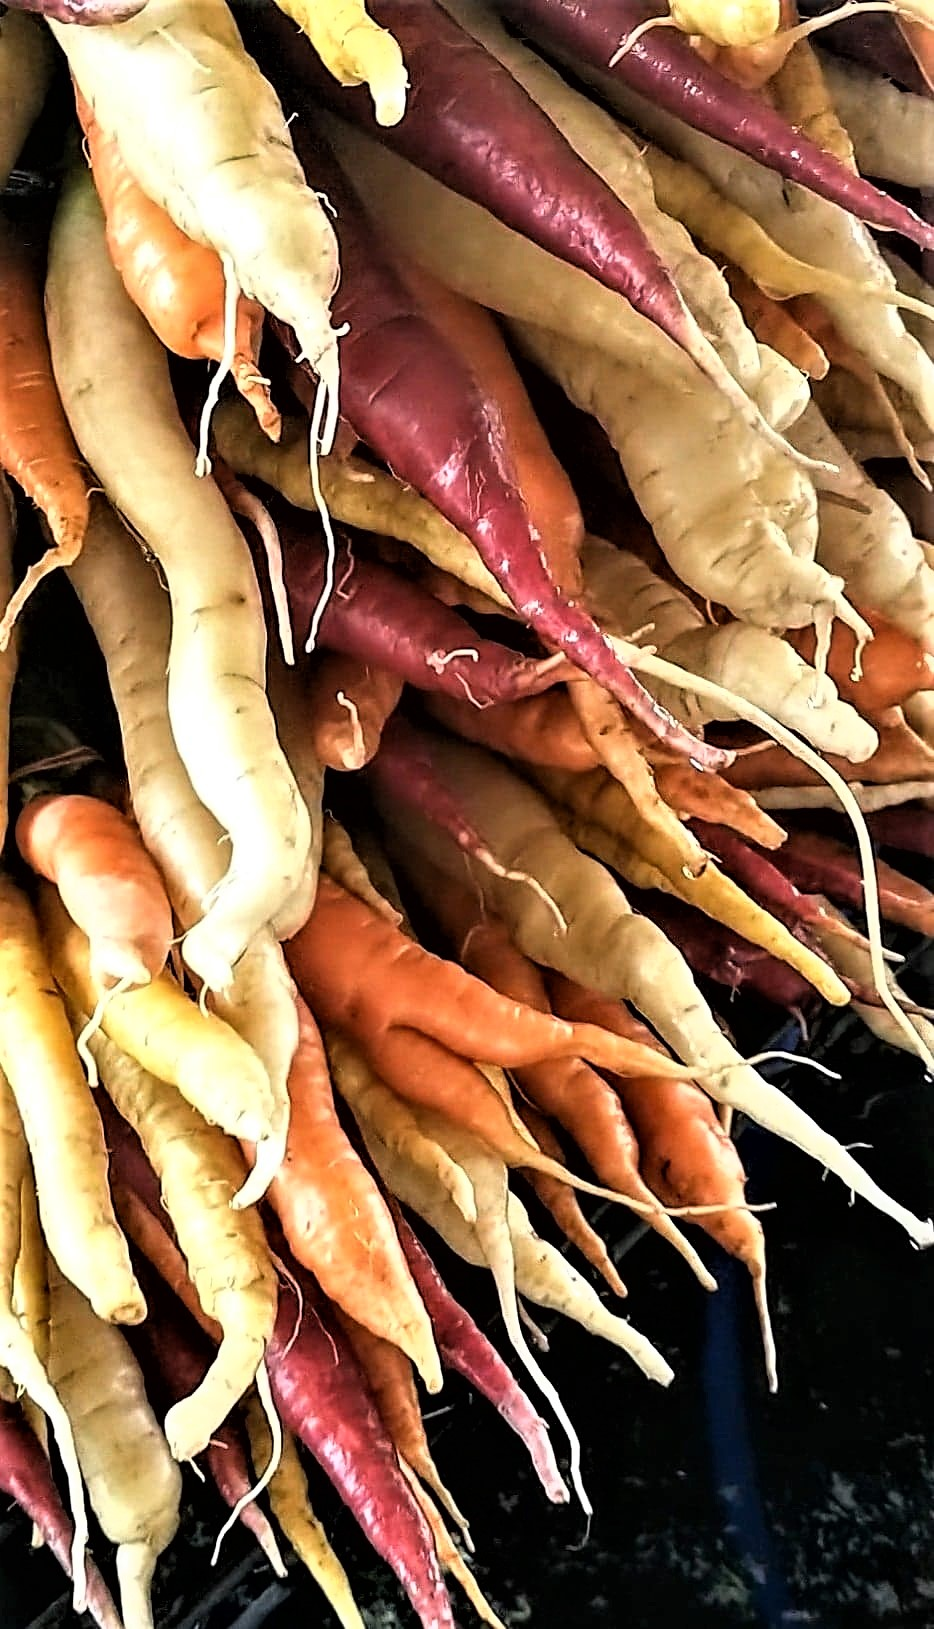 Cleaning Rainbow Carrots | Jupiter Ridge Farm